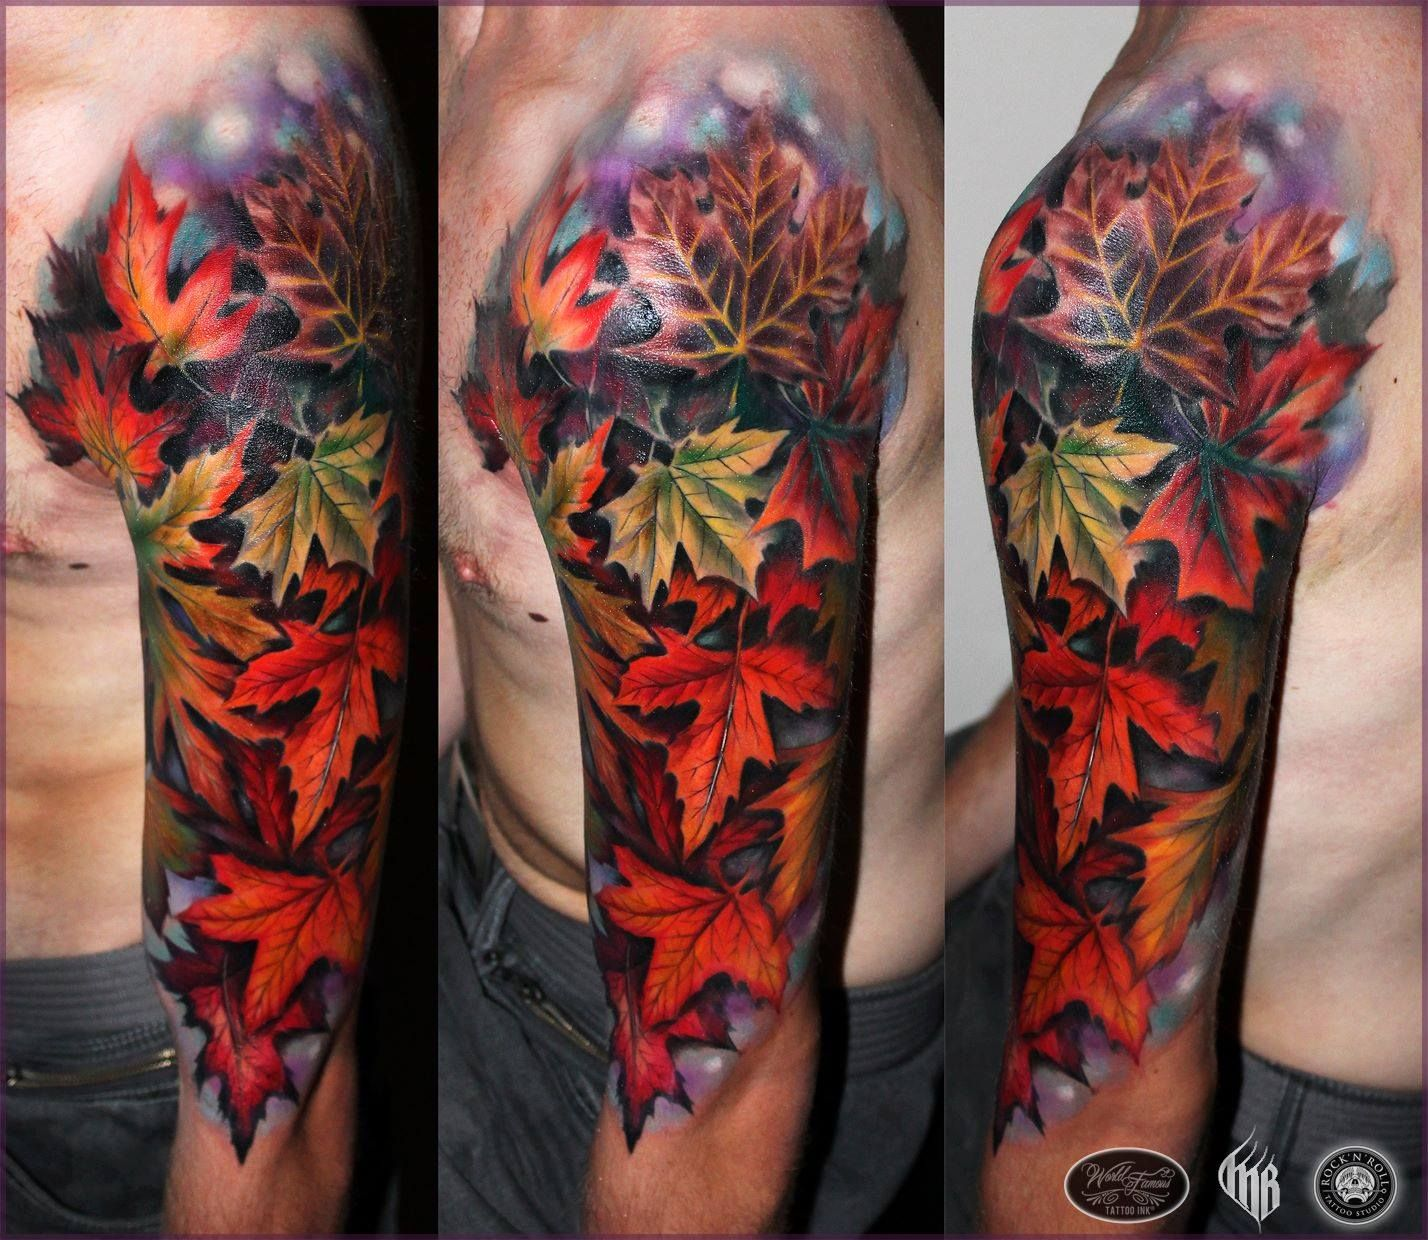 Krzysztof Stefan Baksymilian Tattoos Tattoos Autumn Tattoo Winter Tattoo